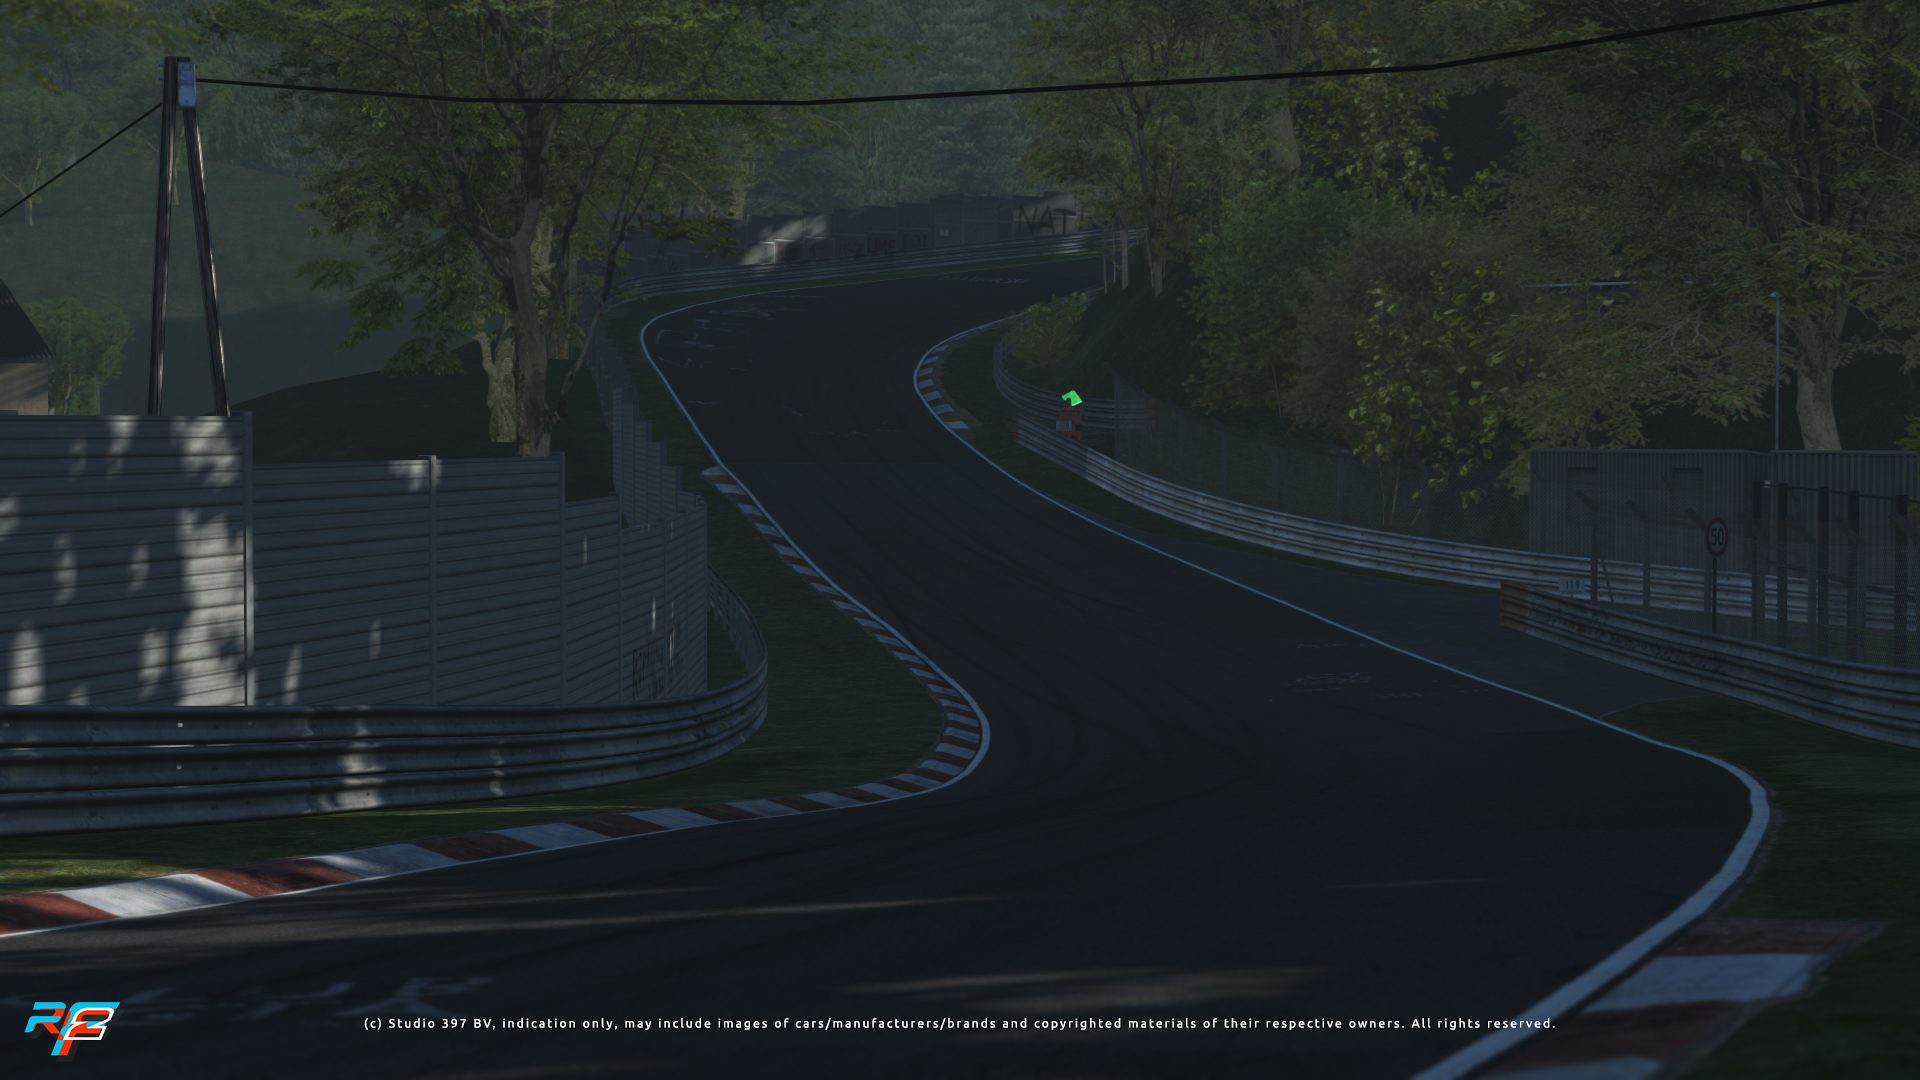 nordschleife_guide_15-1920x1080